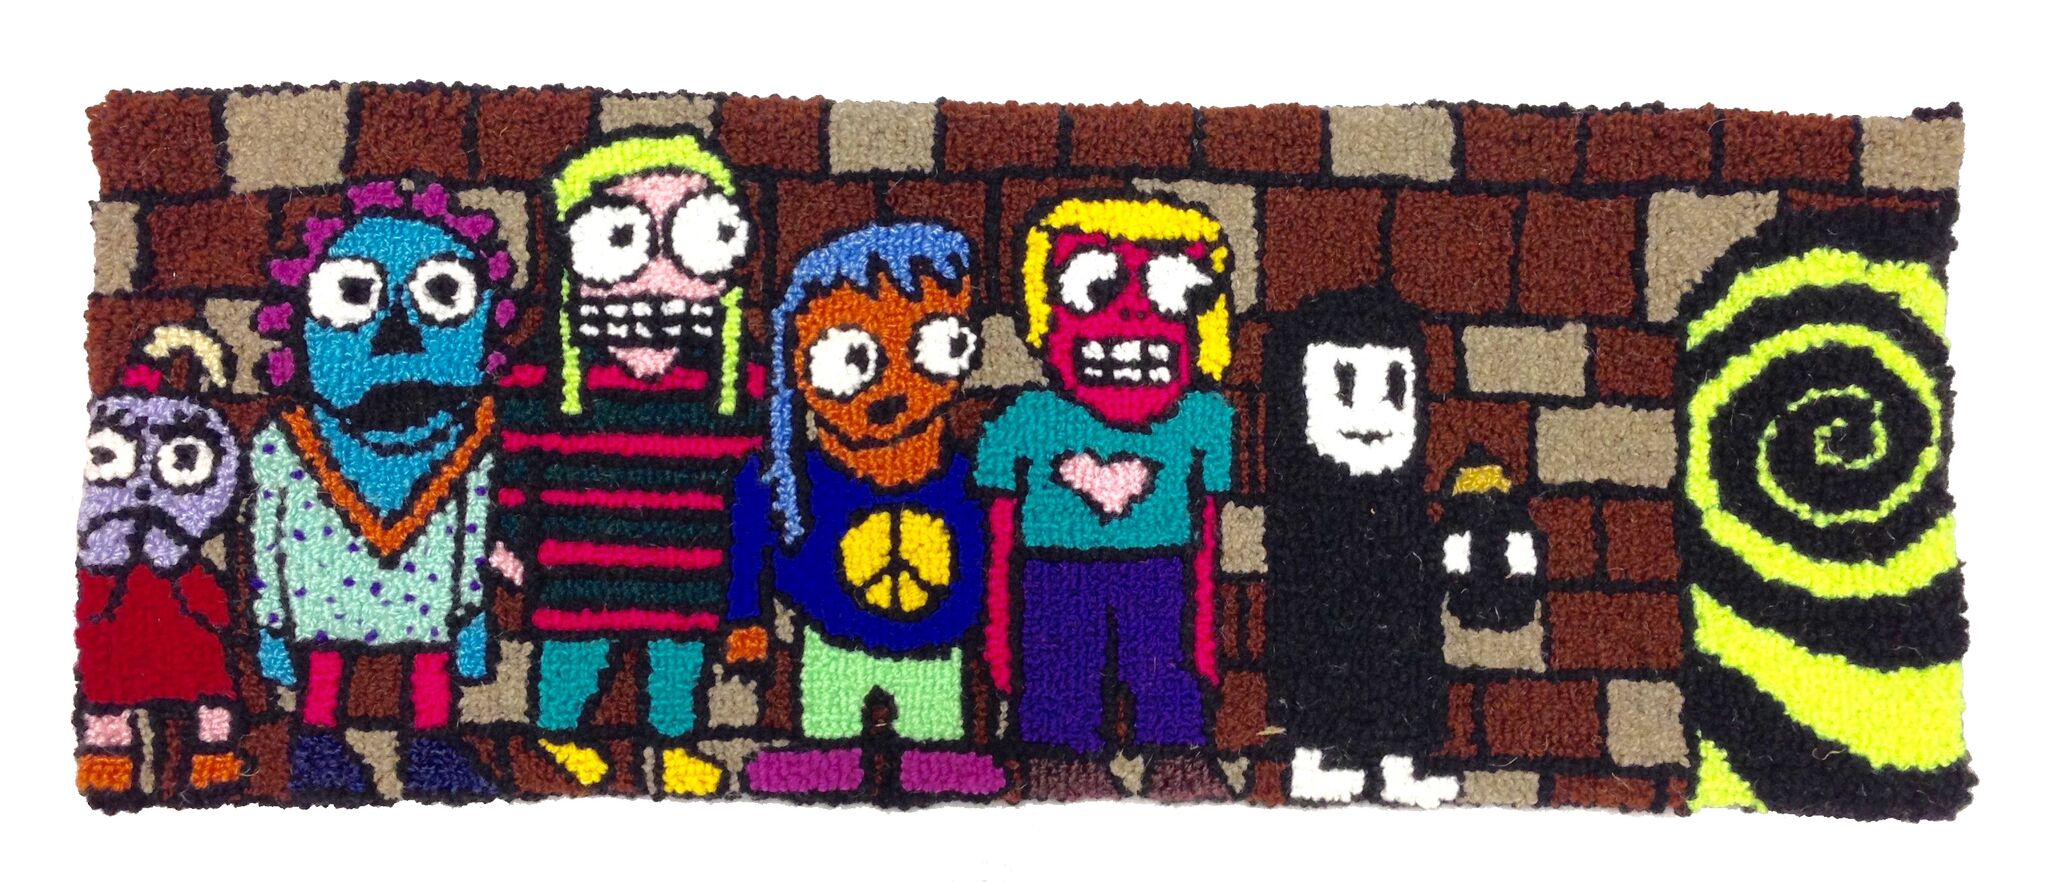 adventure team  wool, acrylic, burlap  dimensions not recorded  2015